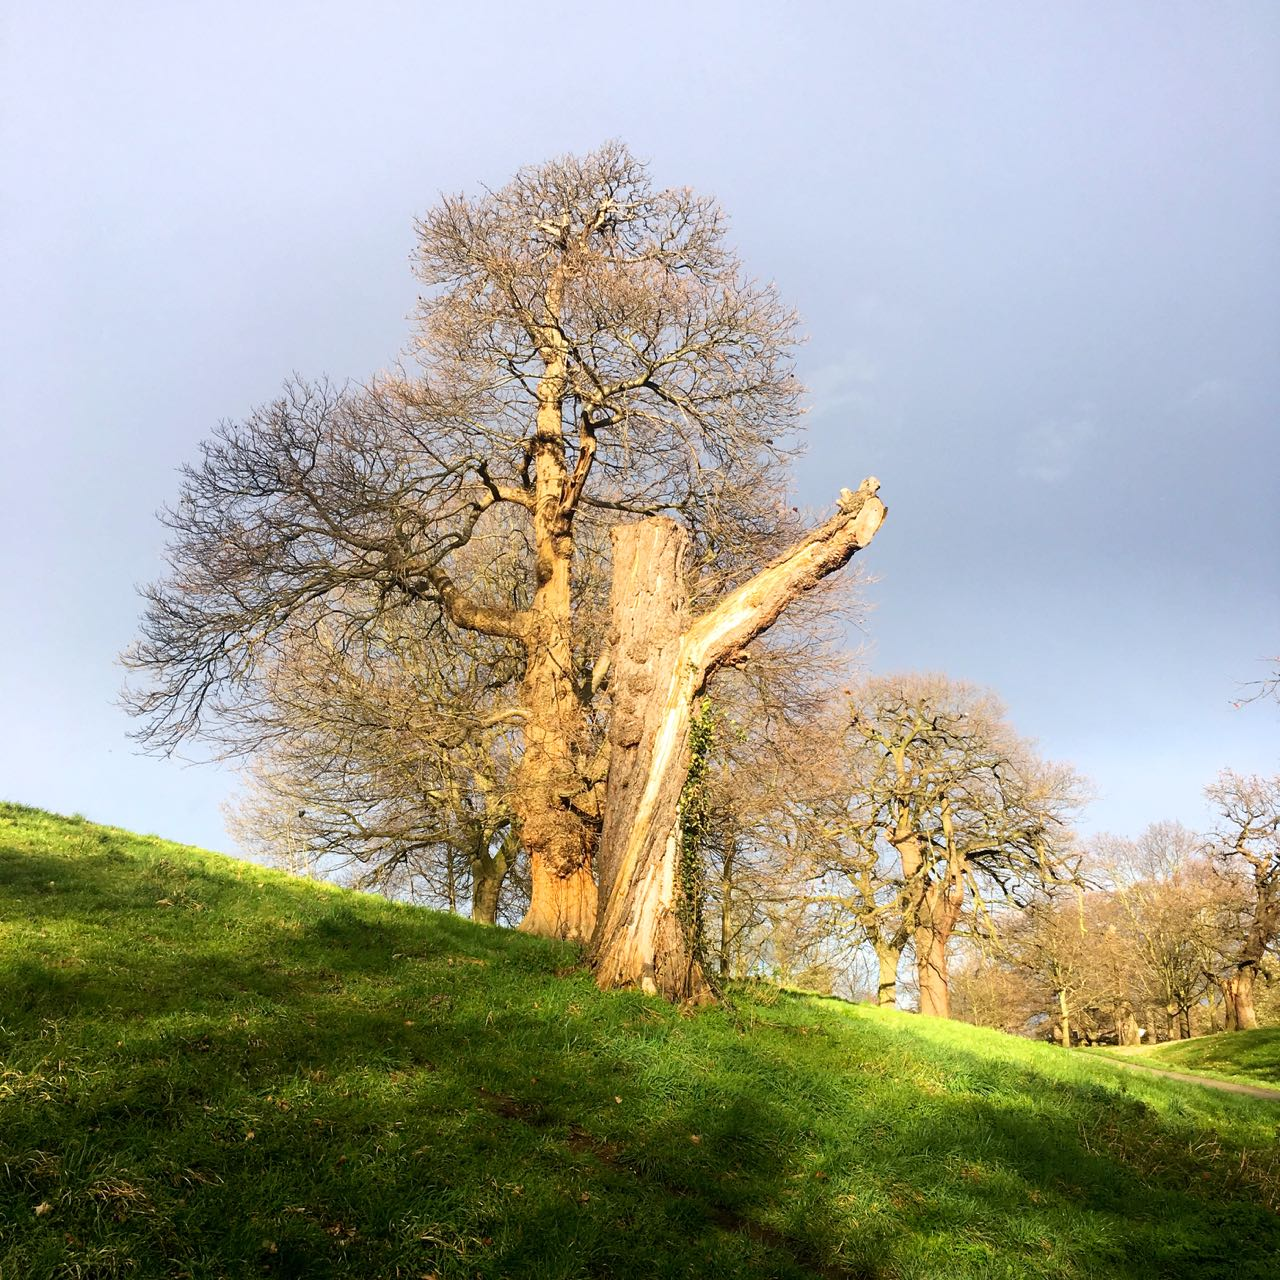 sunlight catching the gnarly old tree trunk in Greenwich Park